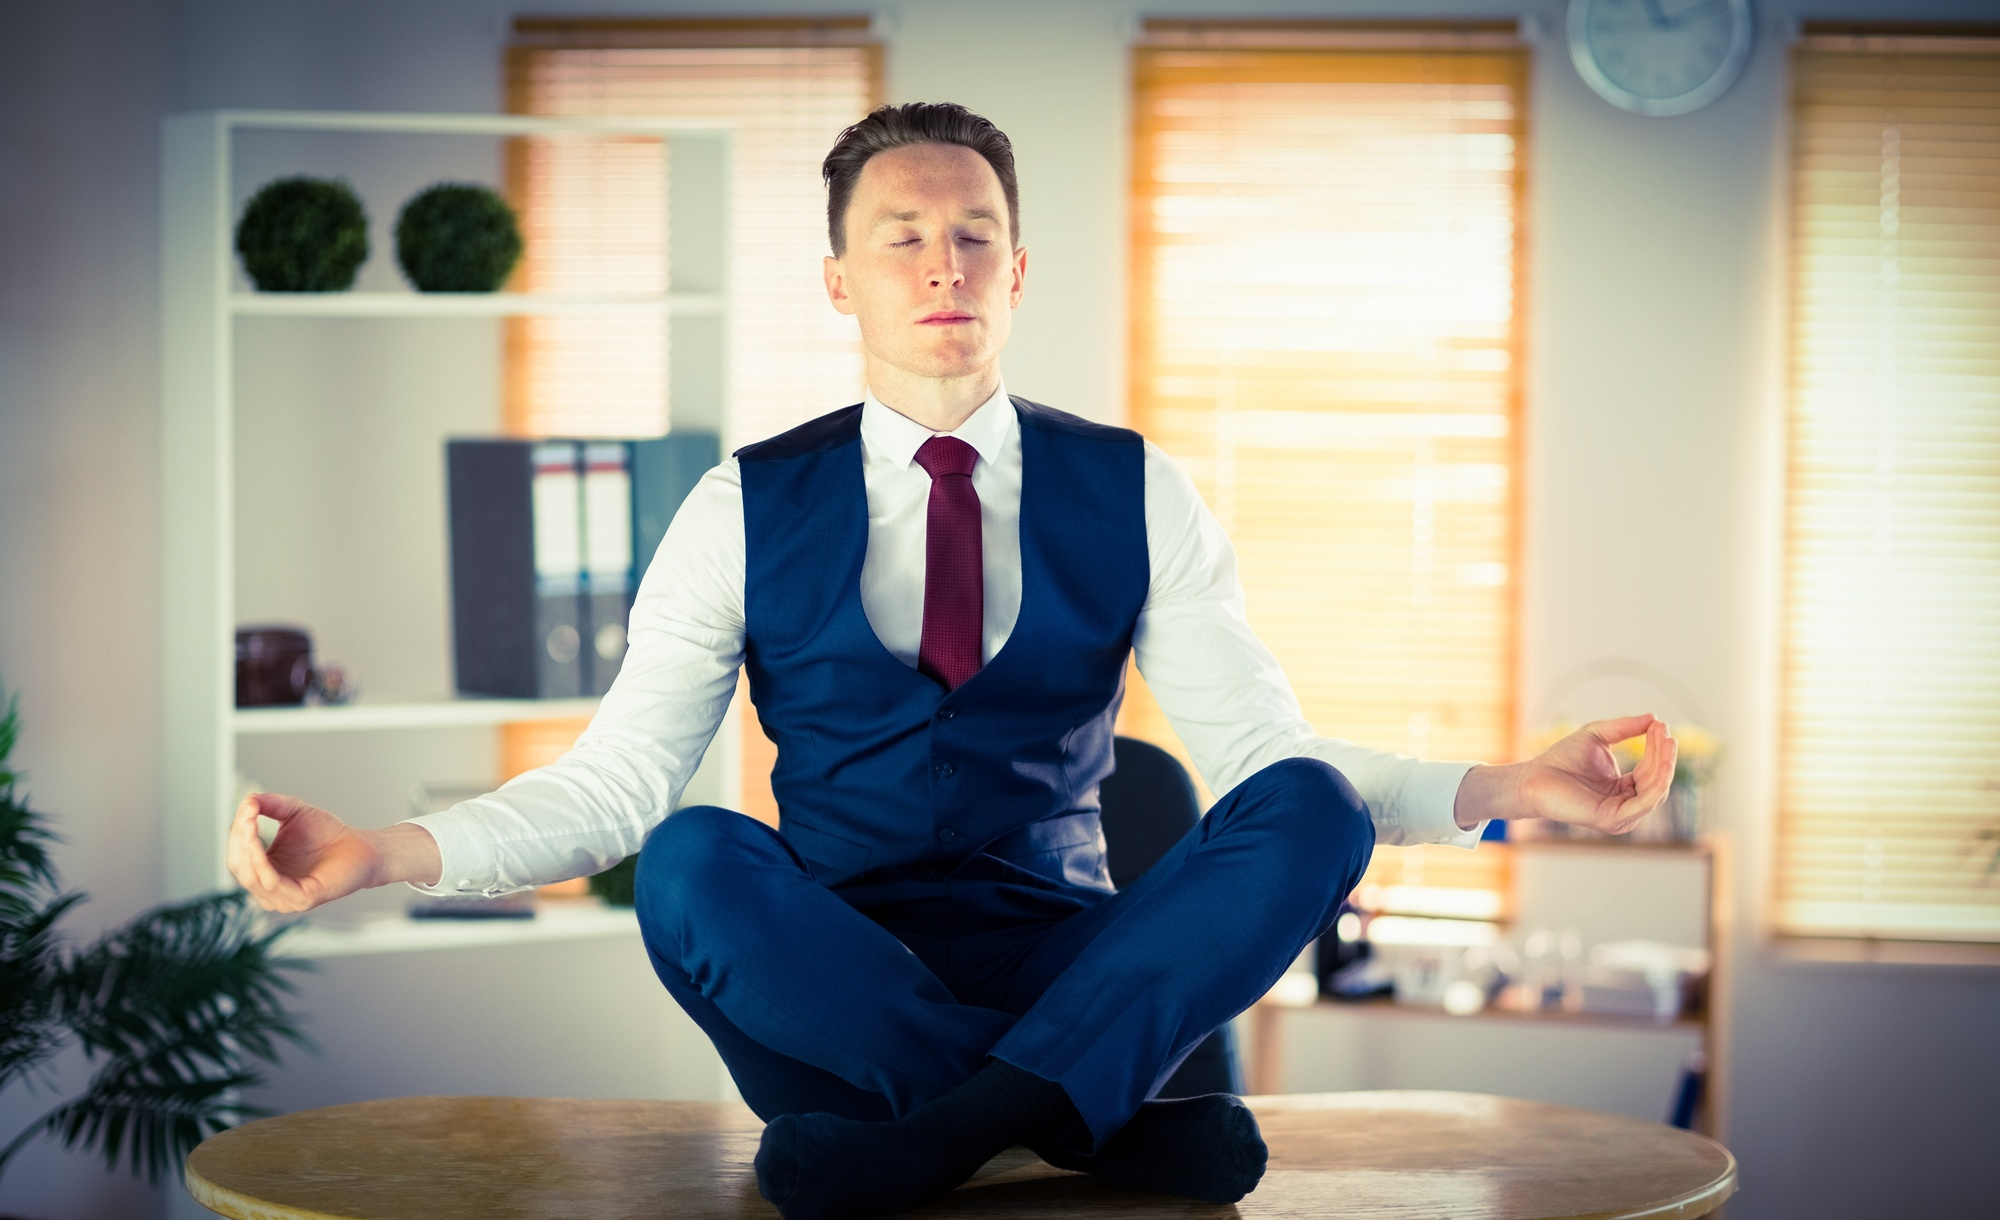 Mindfulness exercises for anxiety